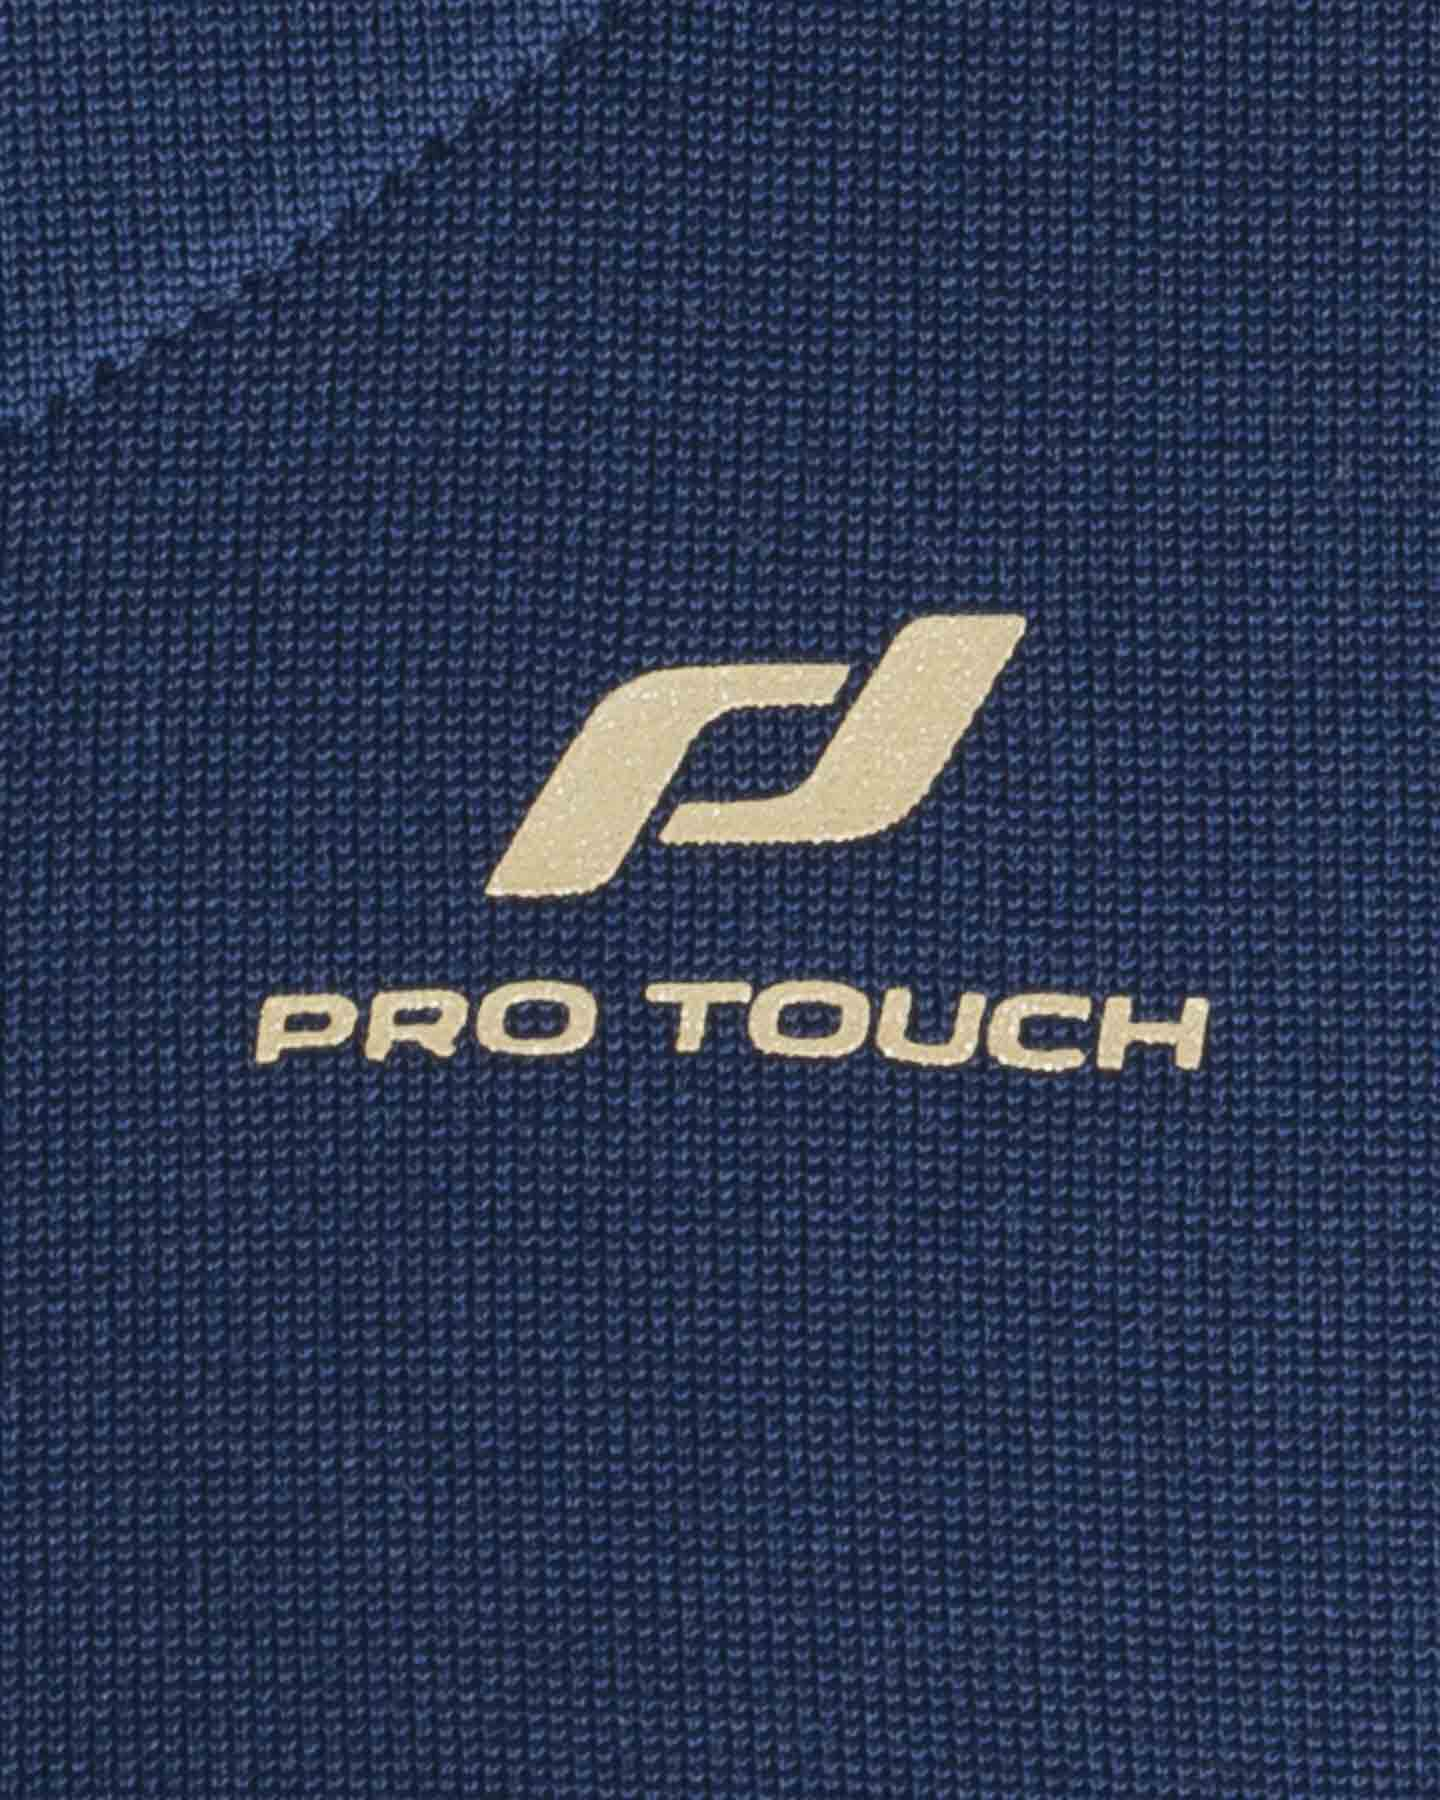 T-Shirt running PRO TOUCH ROSITA IV W S2002179 scatto 2